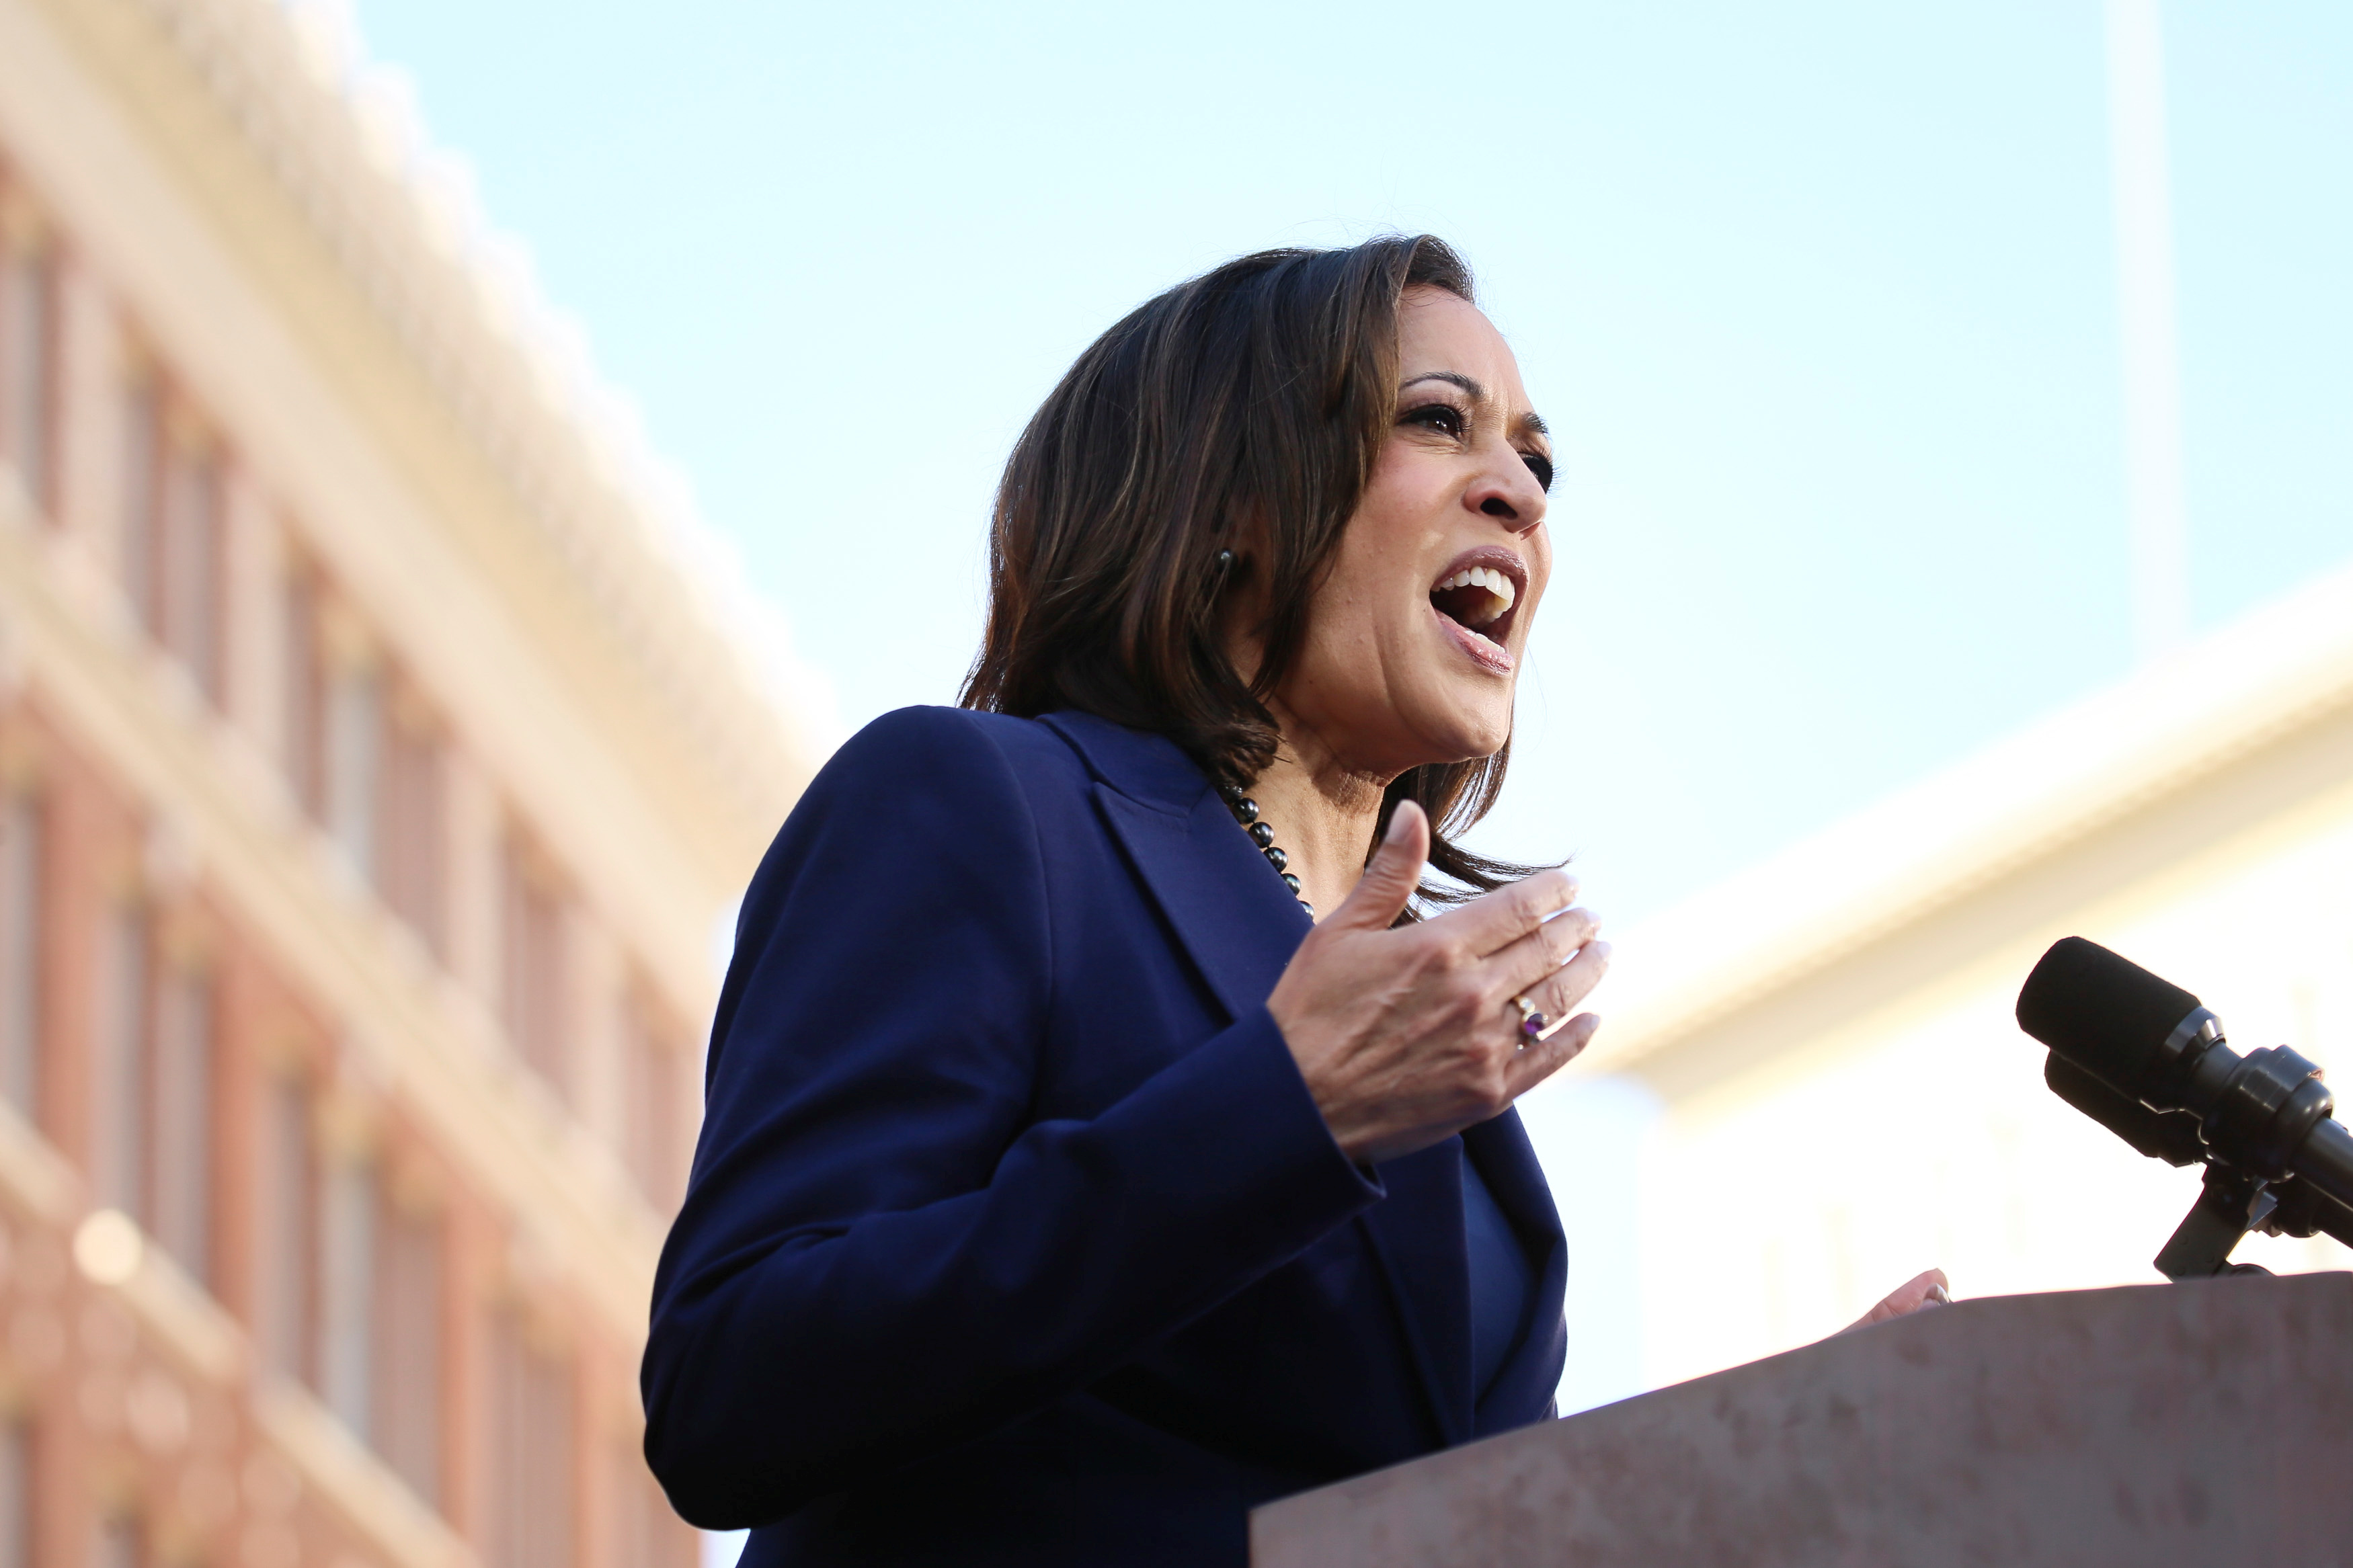 U.S. Senator Harris launches her campaign for President of the United States at a rally at Frank H. Ogawa Plaza in her hometown of Oakland